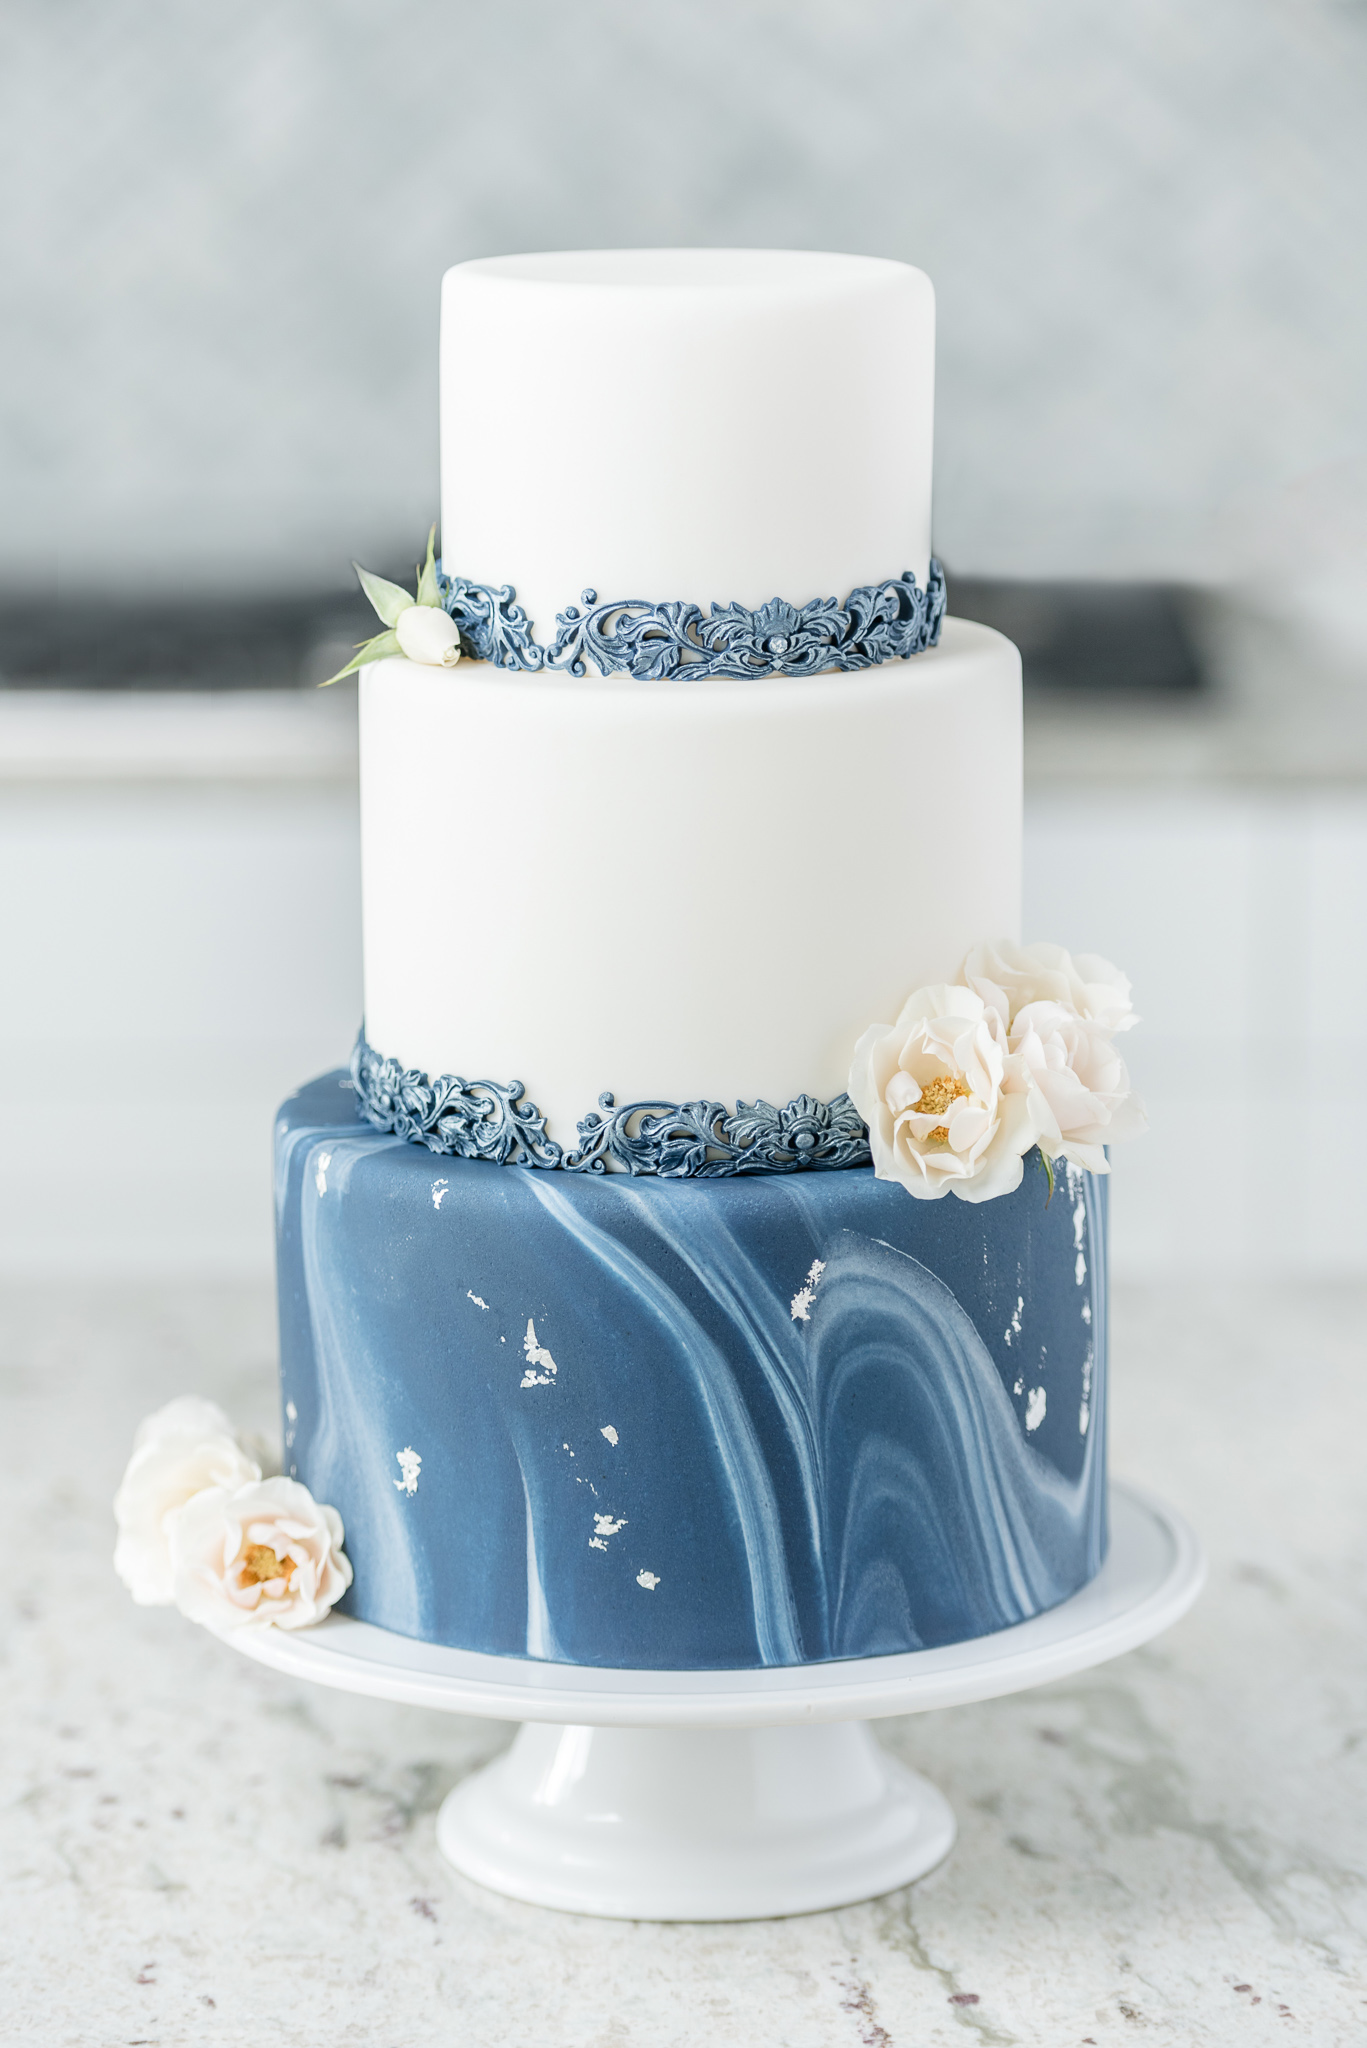 Wedding Cakes in Utah - Sweet Cravings by Marcia Hill_016.jpg